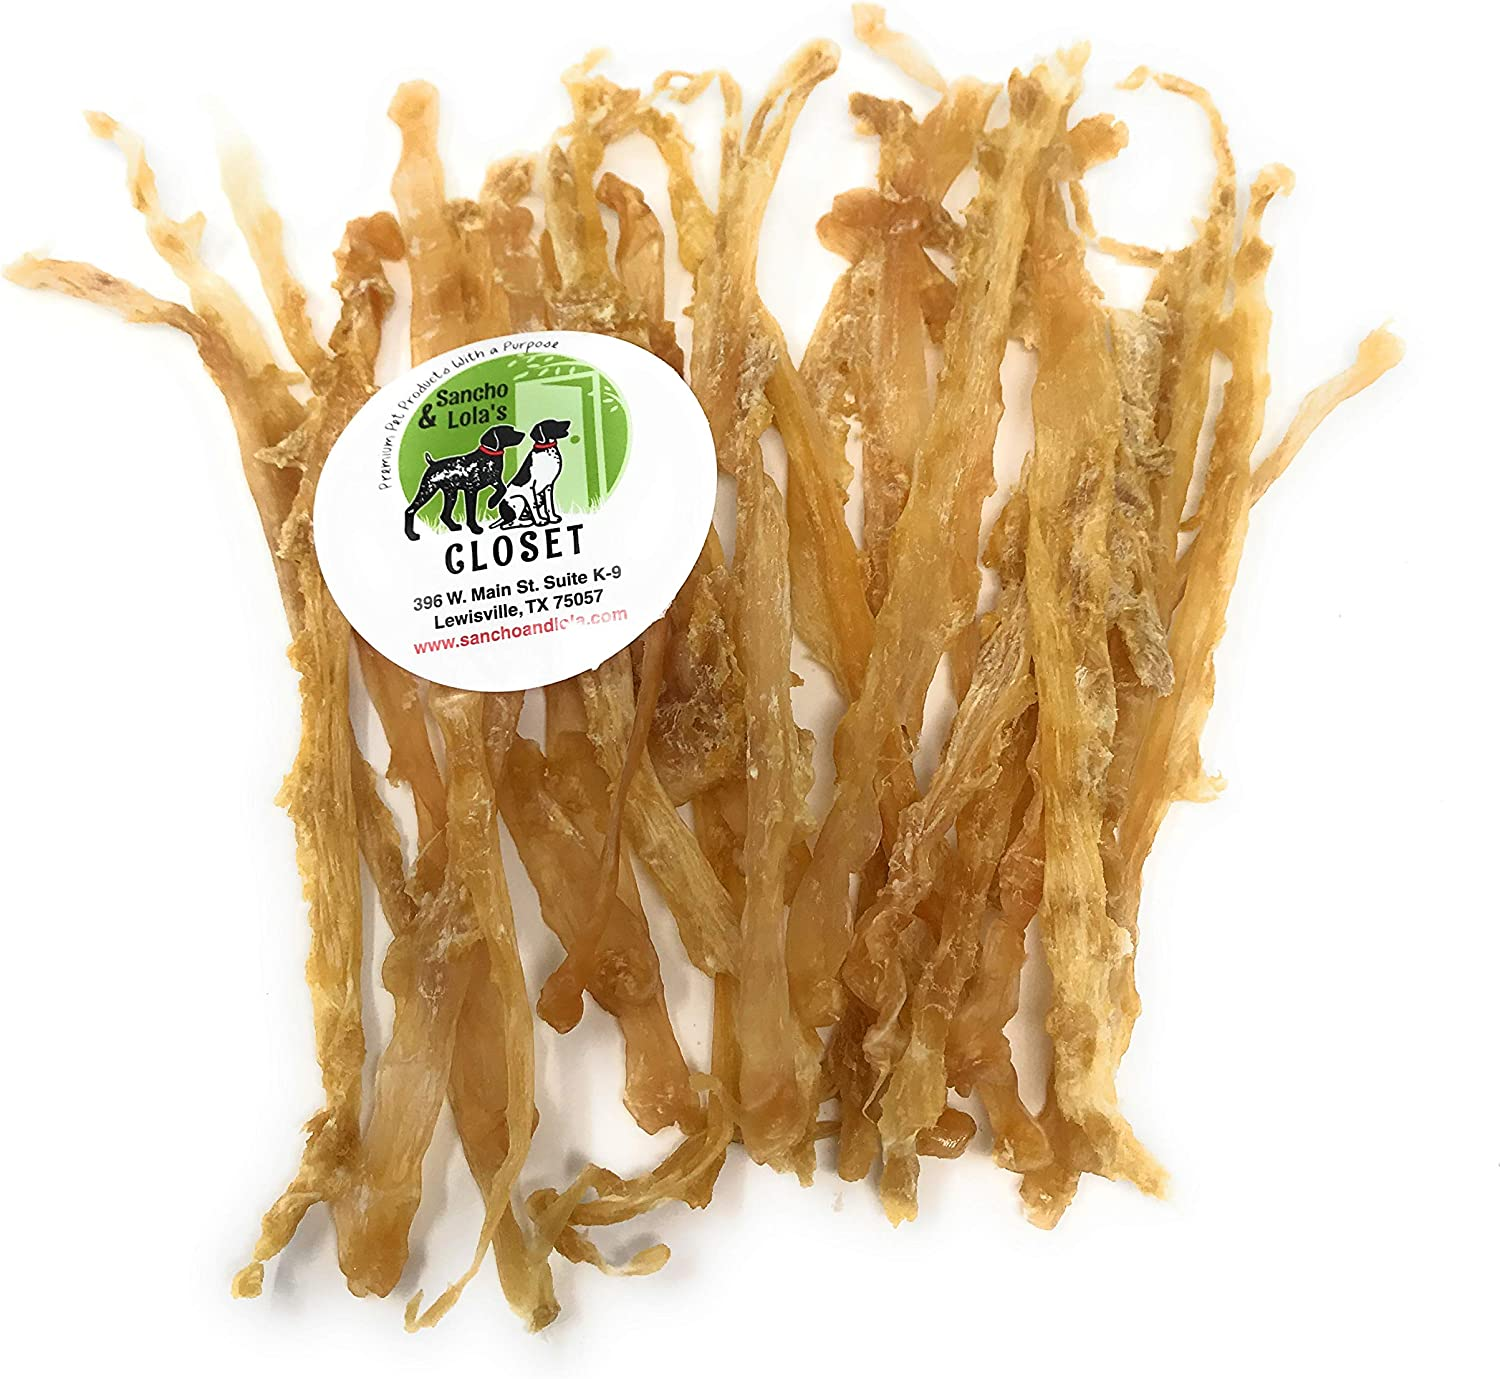 Sancho & Lola's Tendons for Dogs  Beef or Turkey  Made in USA Naturally GrainFree RawhideFree Chews Dogs